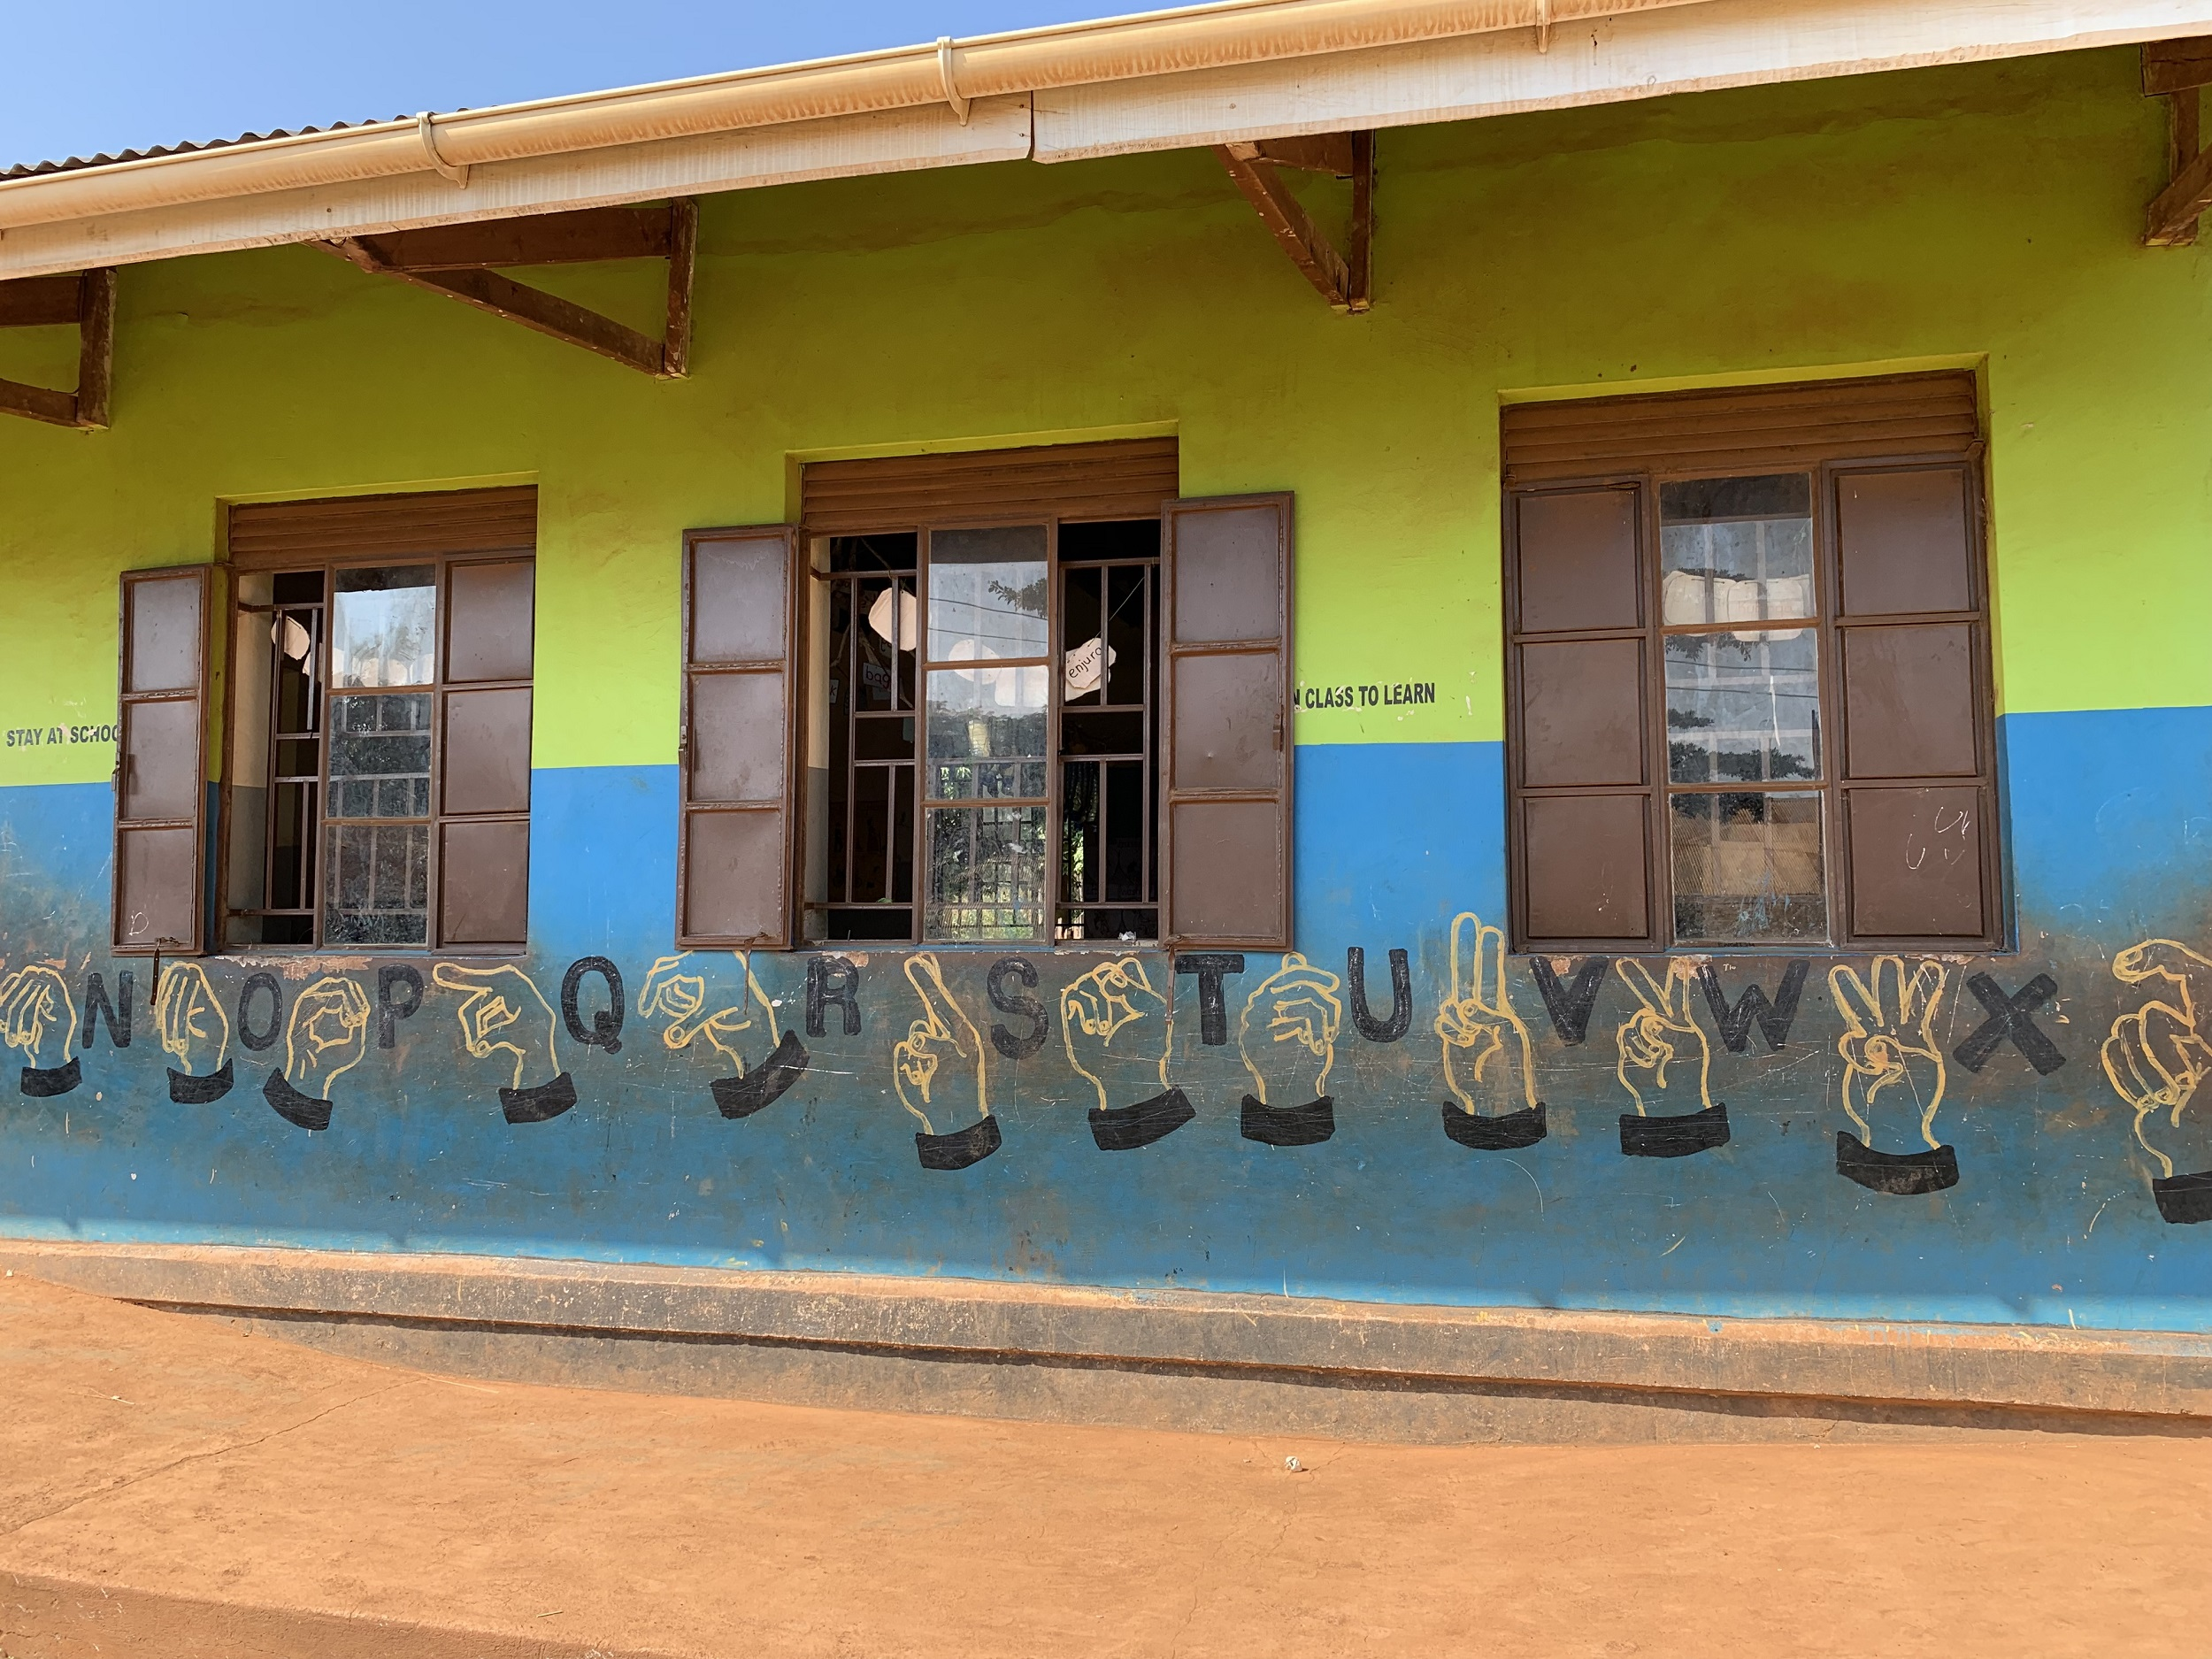 A school wall with windows featuring hand painted sign language and alphabets